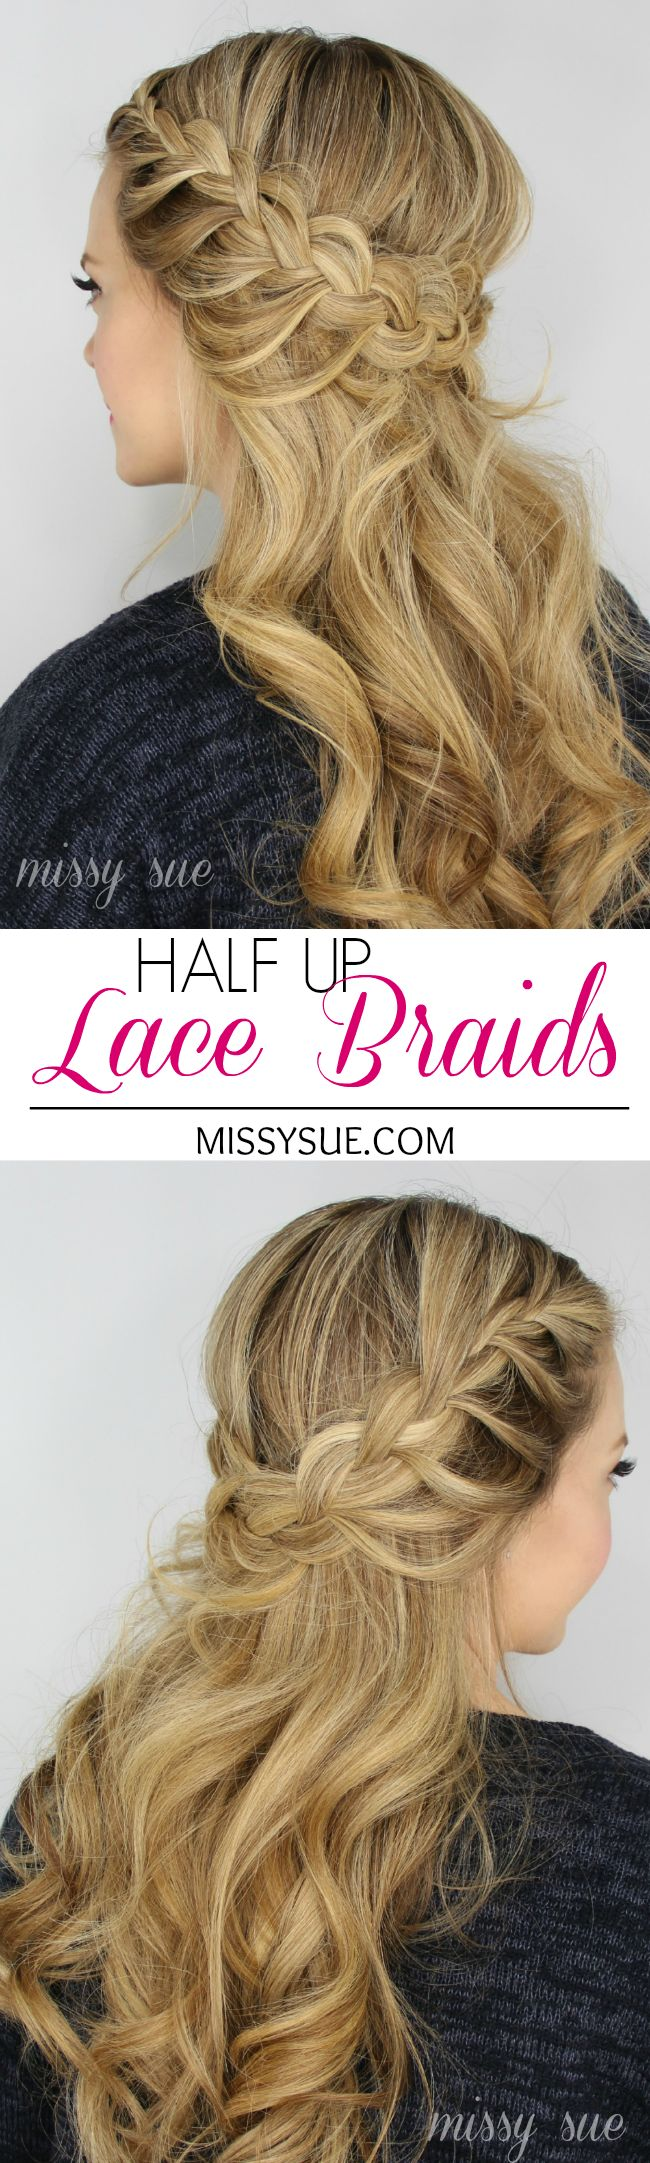 Half Up Lace Braids